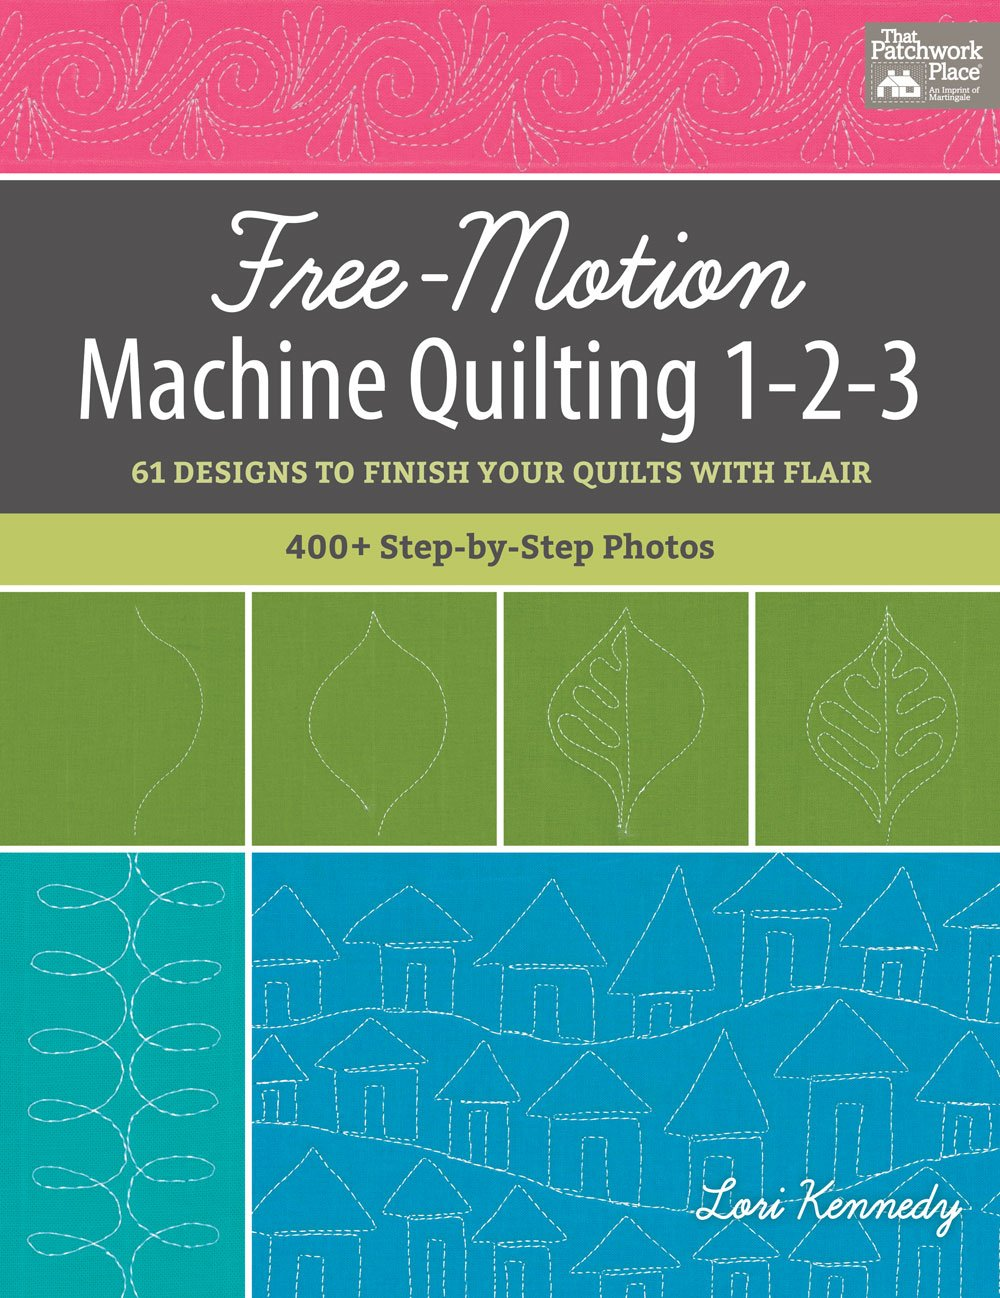 Free-Motion Machine Quilting 1-2-3 by Lori Kennedy for That Patchwork Place